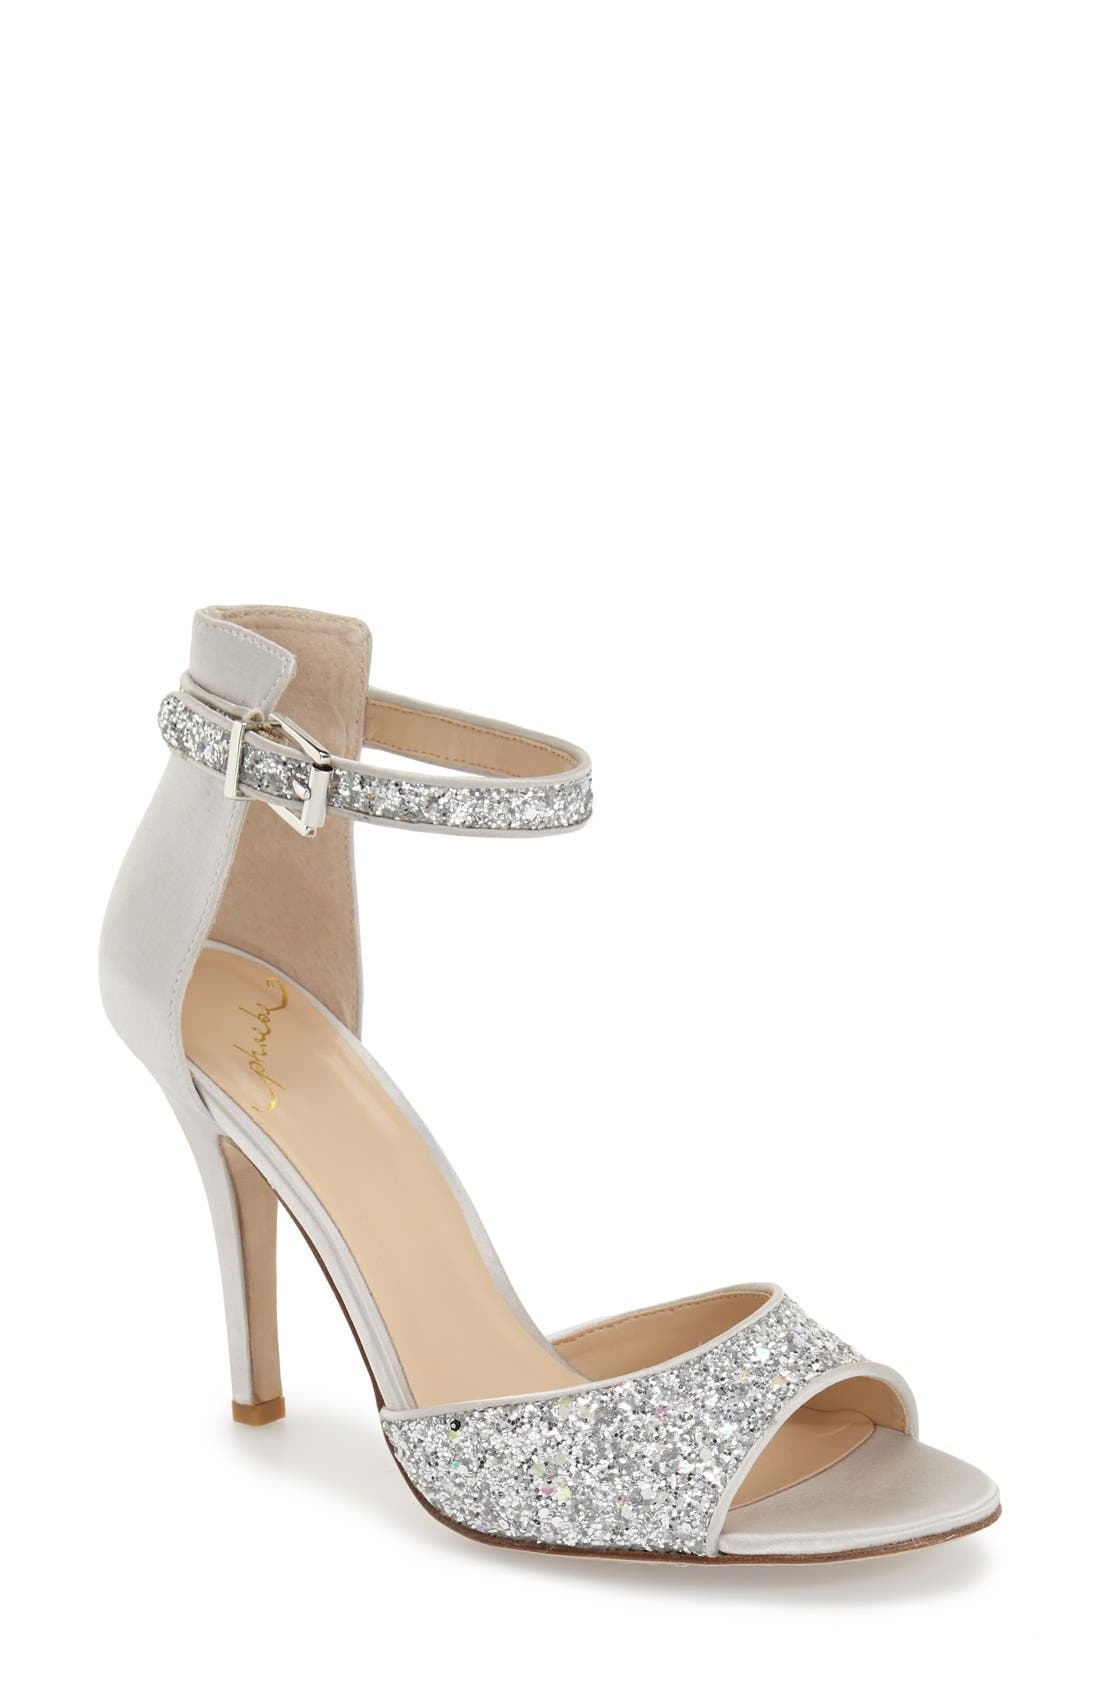 Main Image - Kay Unger 'Phoebe Collection - Helena Glitter' Sandal (Women)